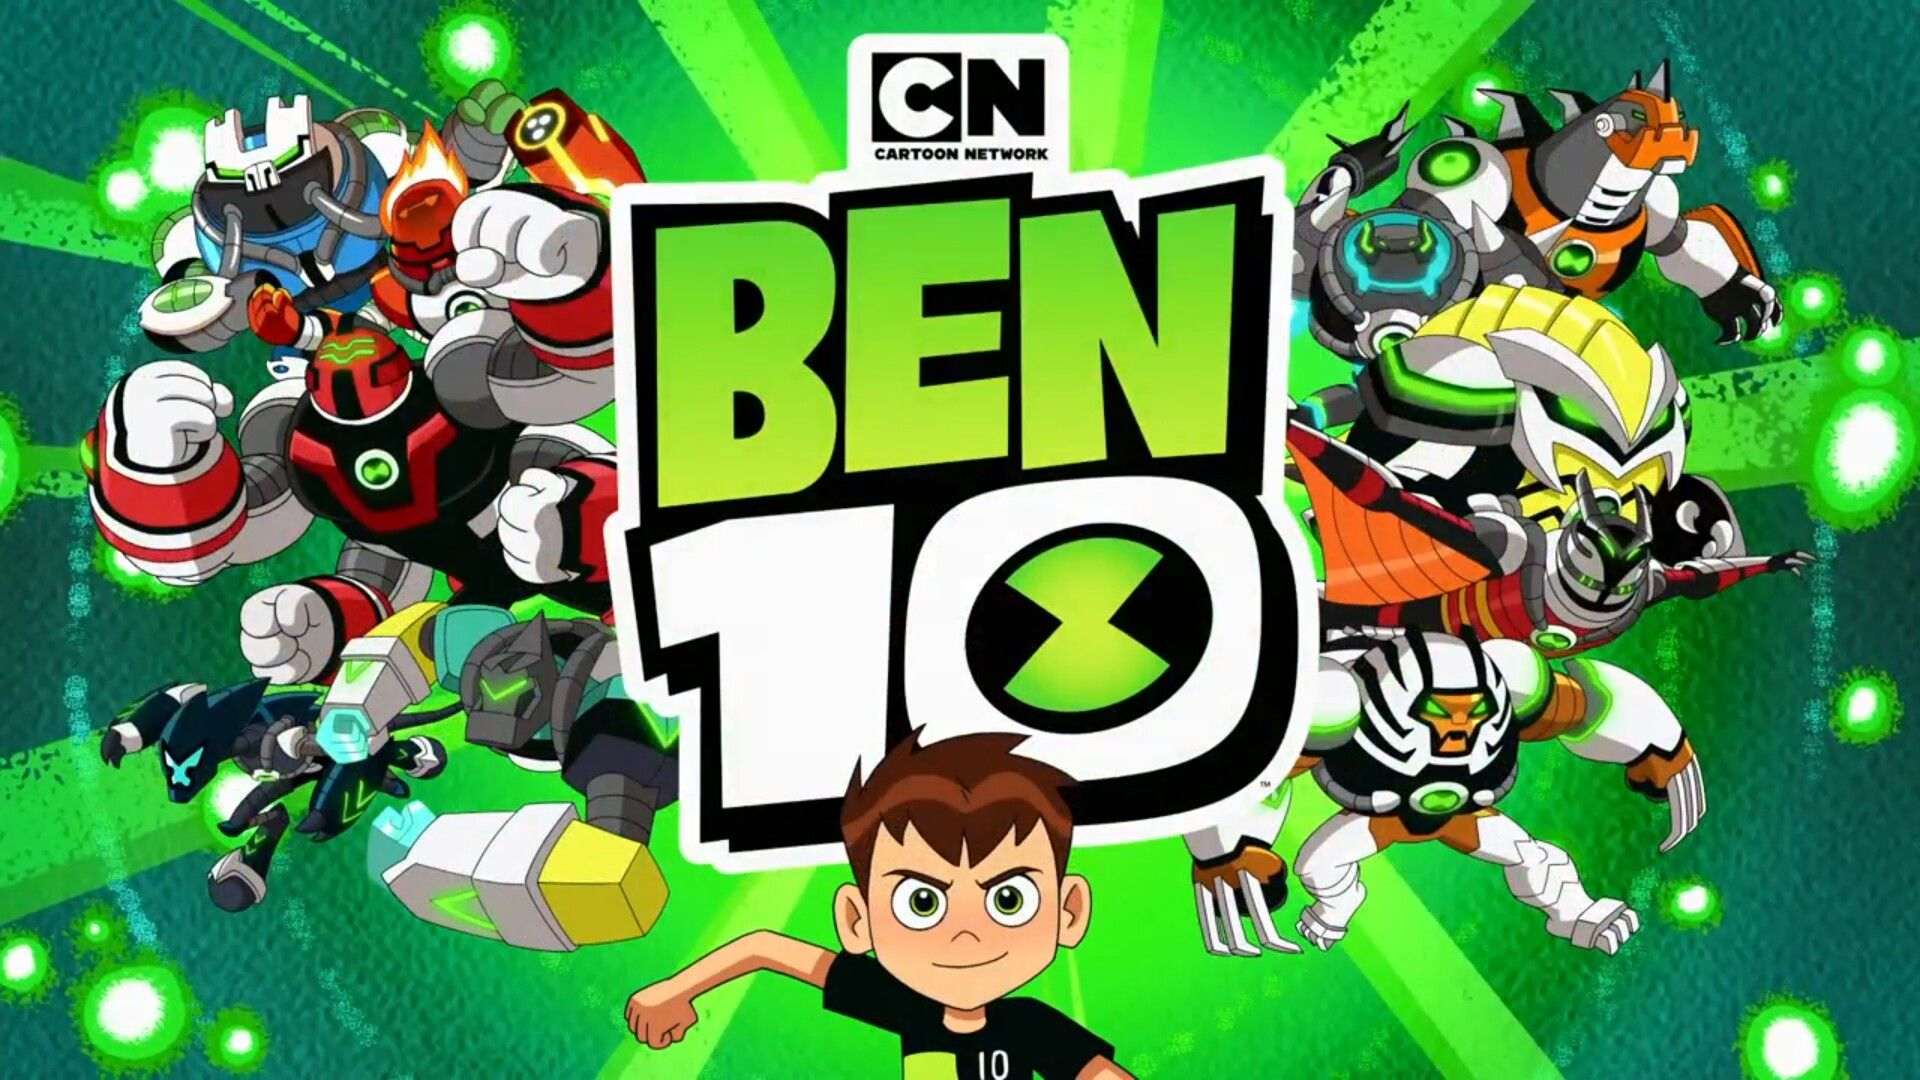 Pin By Mysterious Dunia On Ben 10 Alien Force Ultimate Alien Omniverse Omniverse Galactic Monsters Reboot Ben 10 Ben 10 Ultimate Alien Power Rangers Fan Art